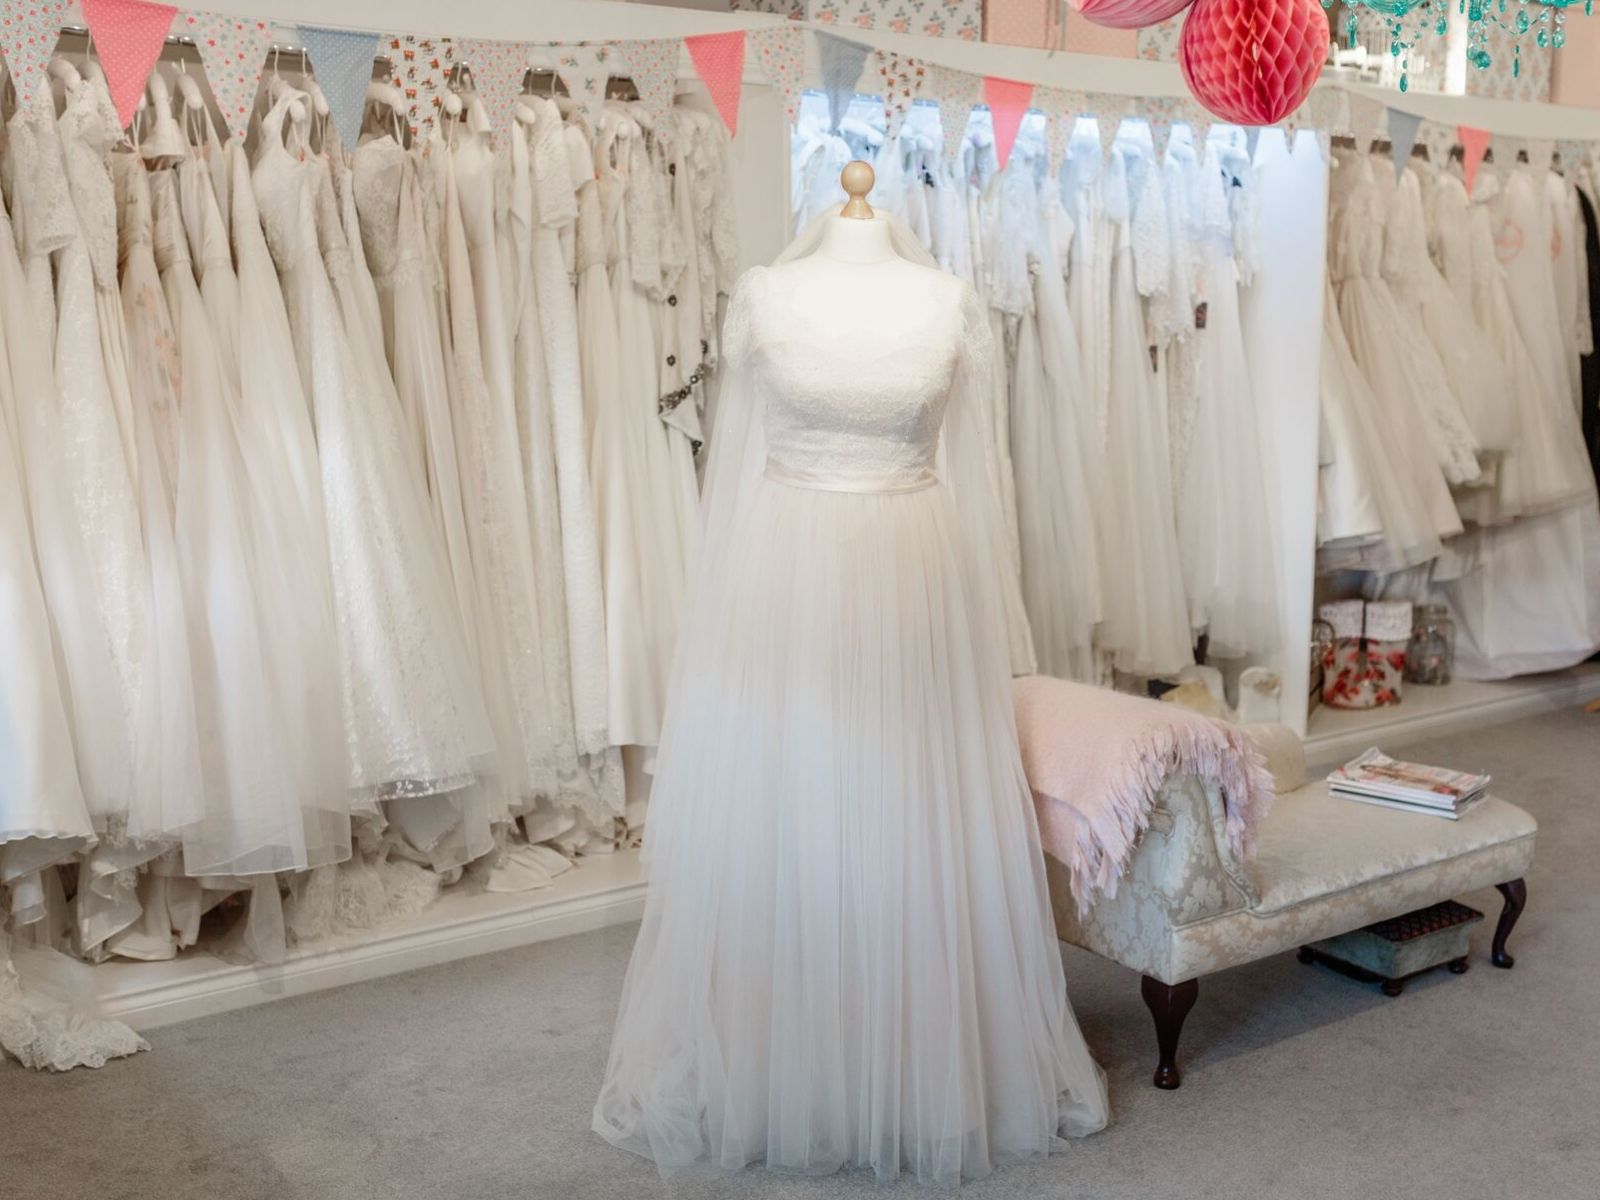 Boho Bride boutique at Stratford Upon Avon